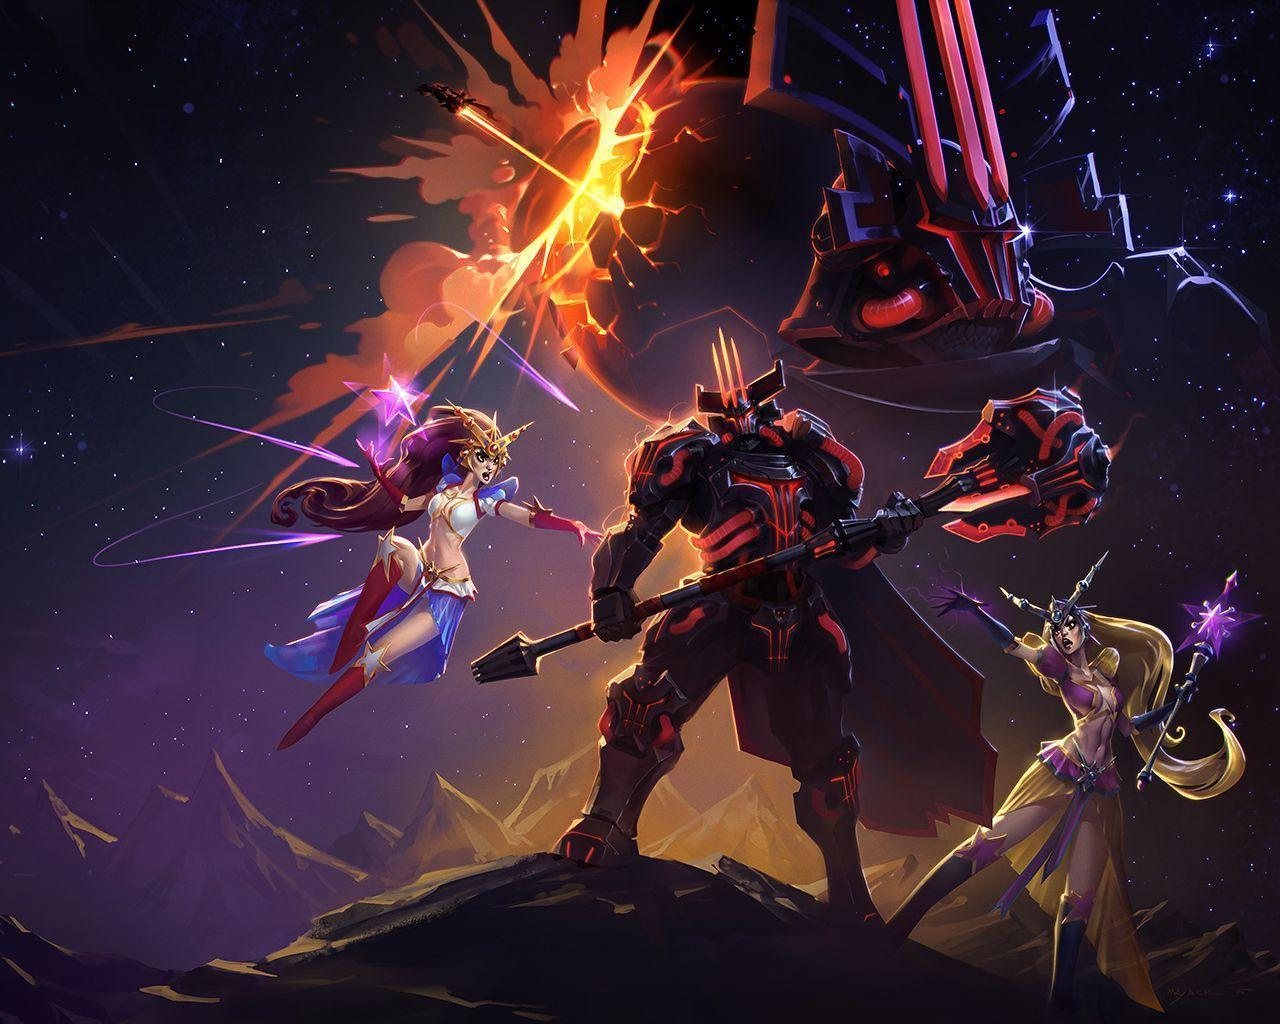 Heroes of the storm wallpapers wallpaper cave - Heroes of the storm space lord leoric ...